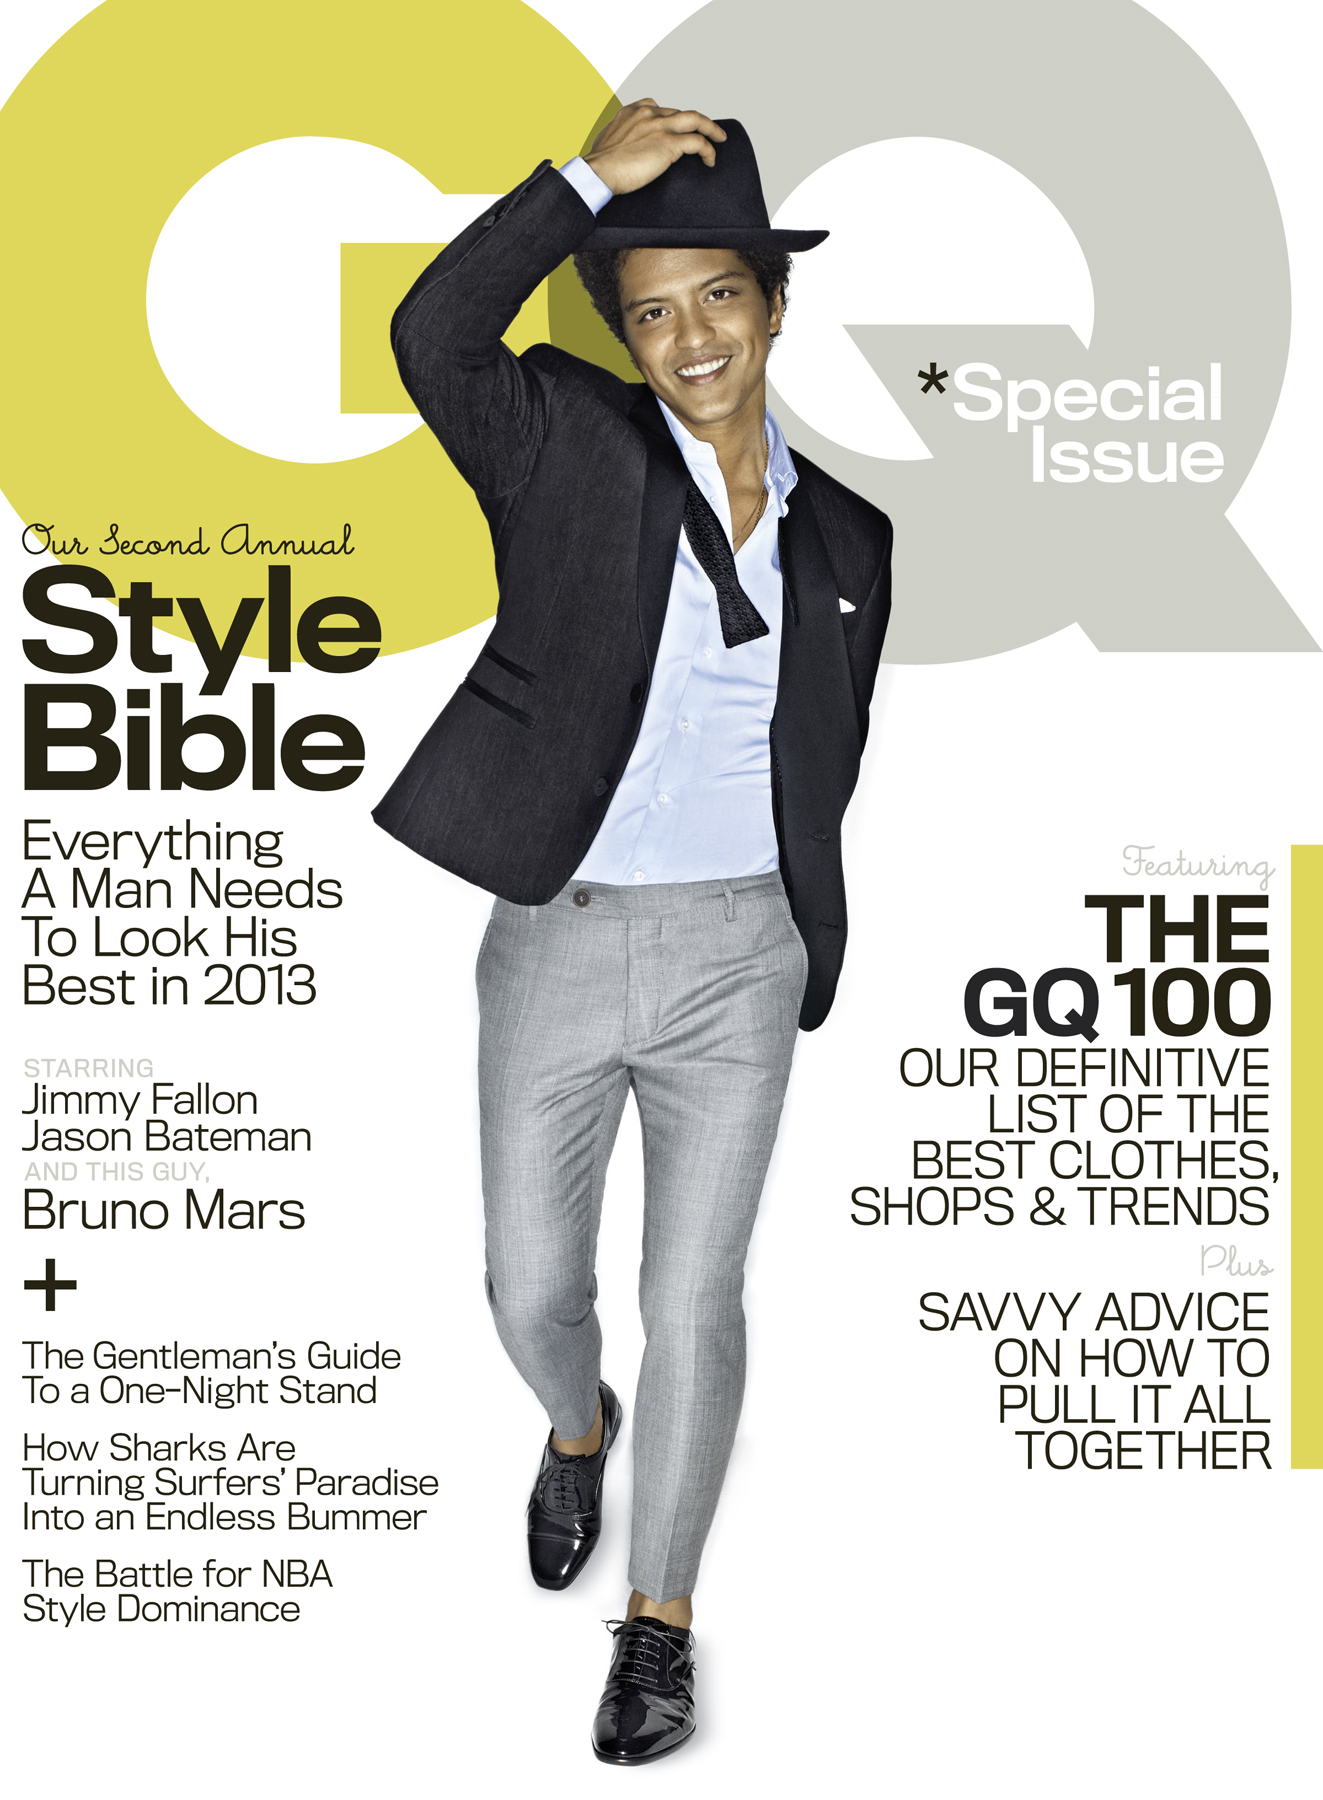 bruno mars Bruno Mars Talks Monkey Sex To GQ